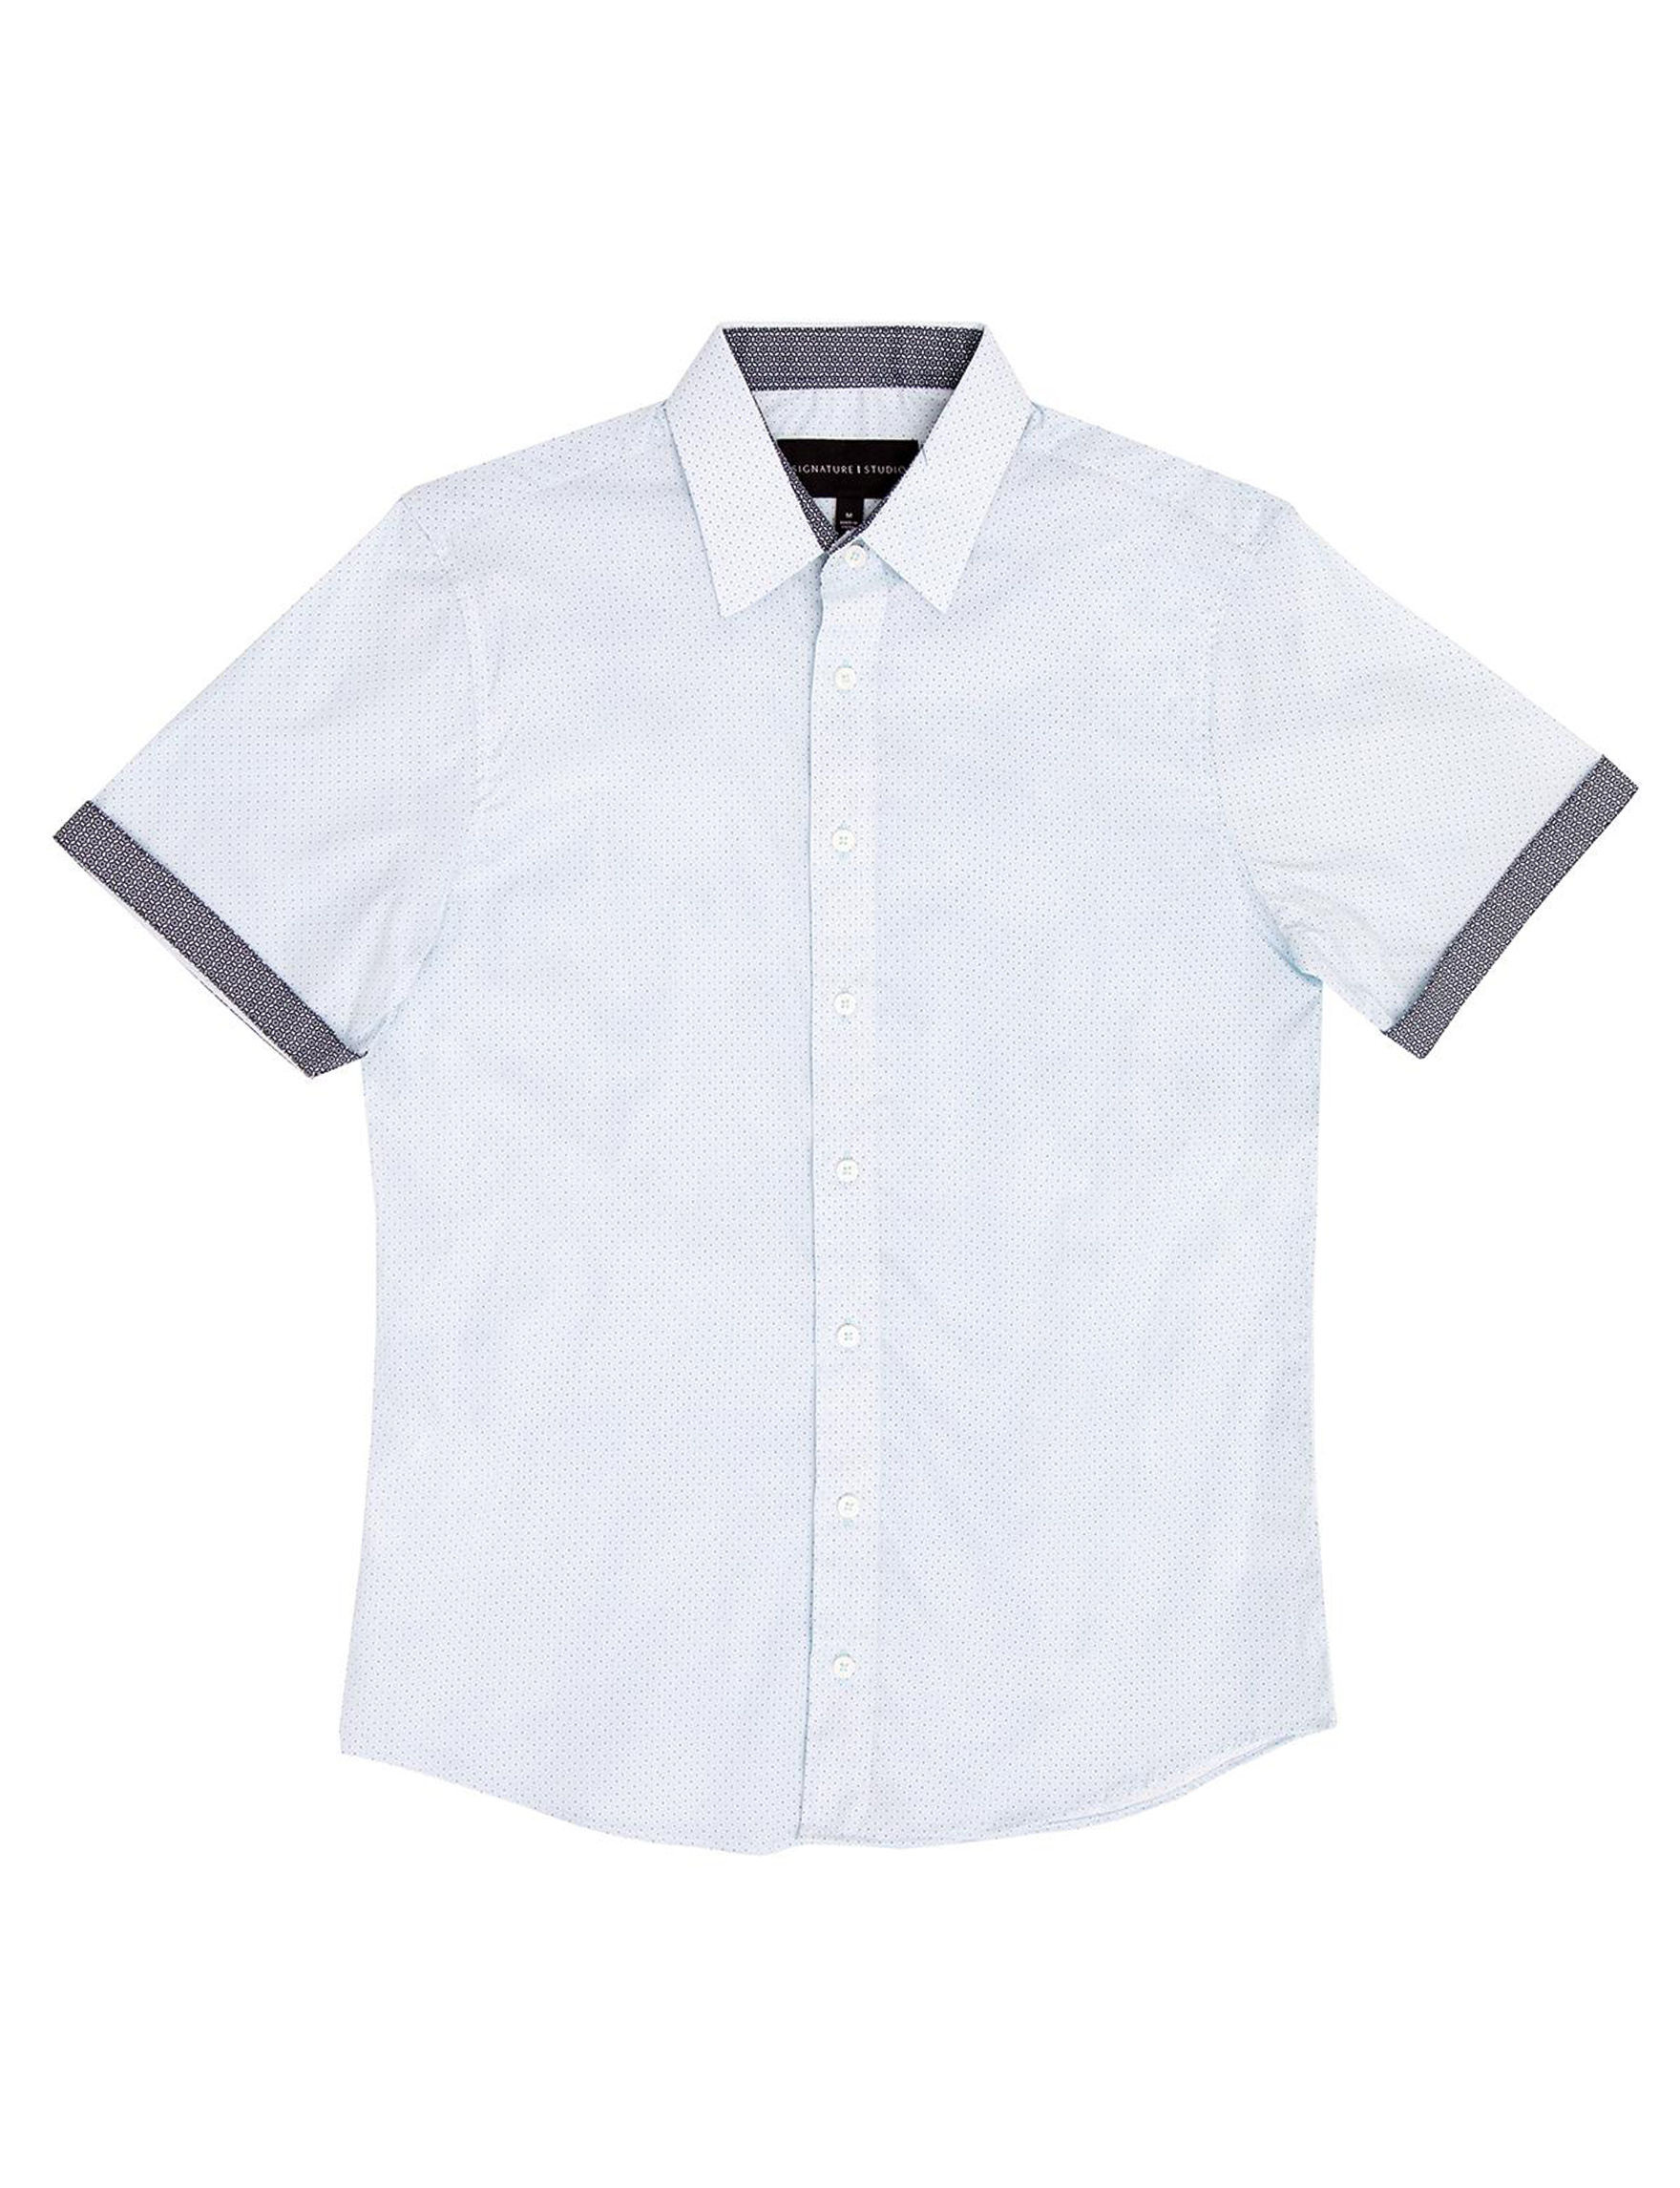 Signature Studio White / Navy Casual Button Down Shirts